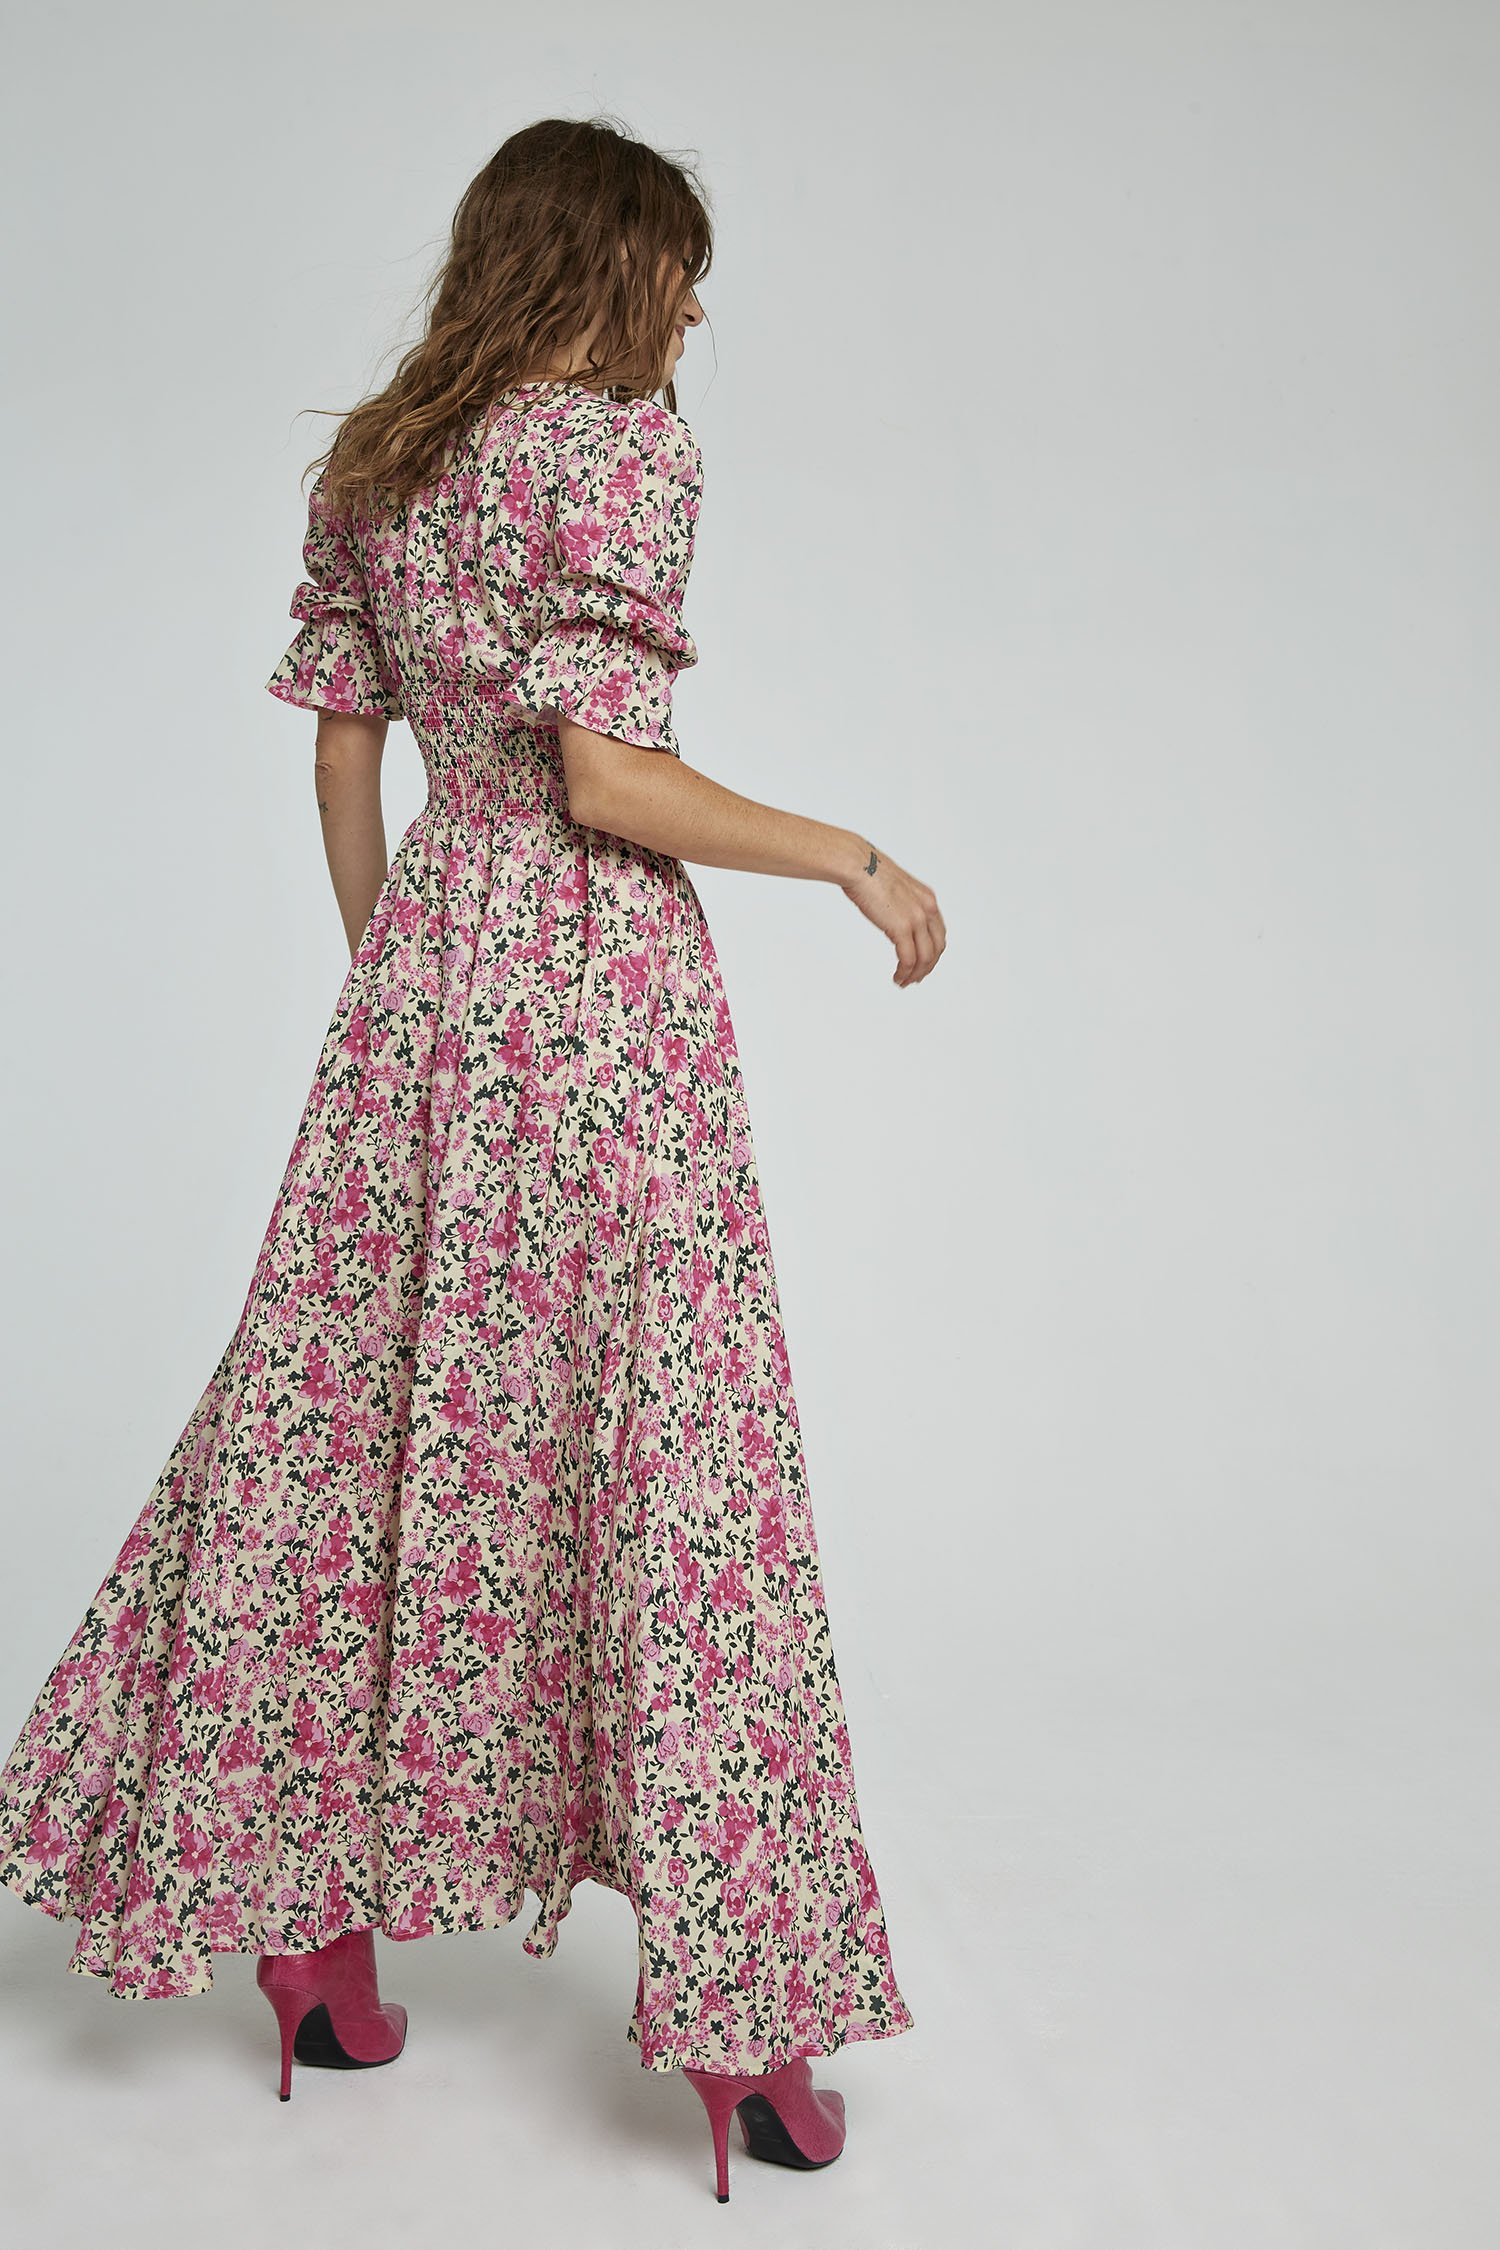 SHOPPING ON LINE ANIYE BY LONG DRESS ISABEL COLLECTION WOMEN'S SPRING SUMMER 2021